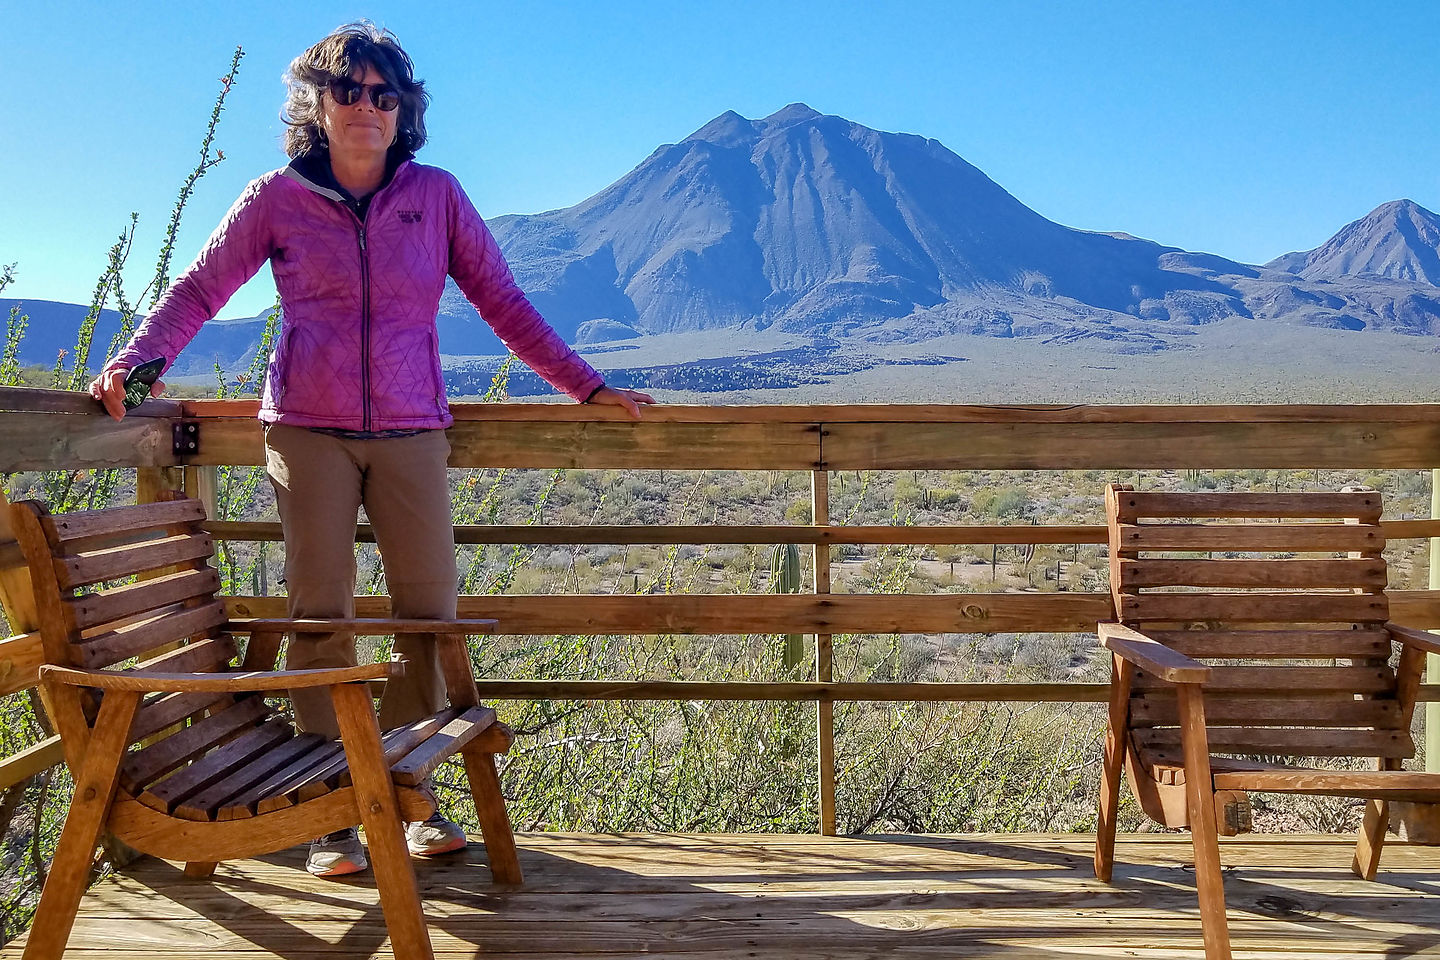 Our balcony overlooking the volcanoes